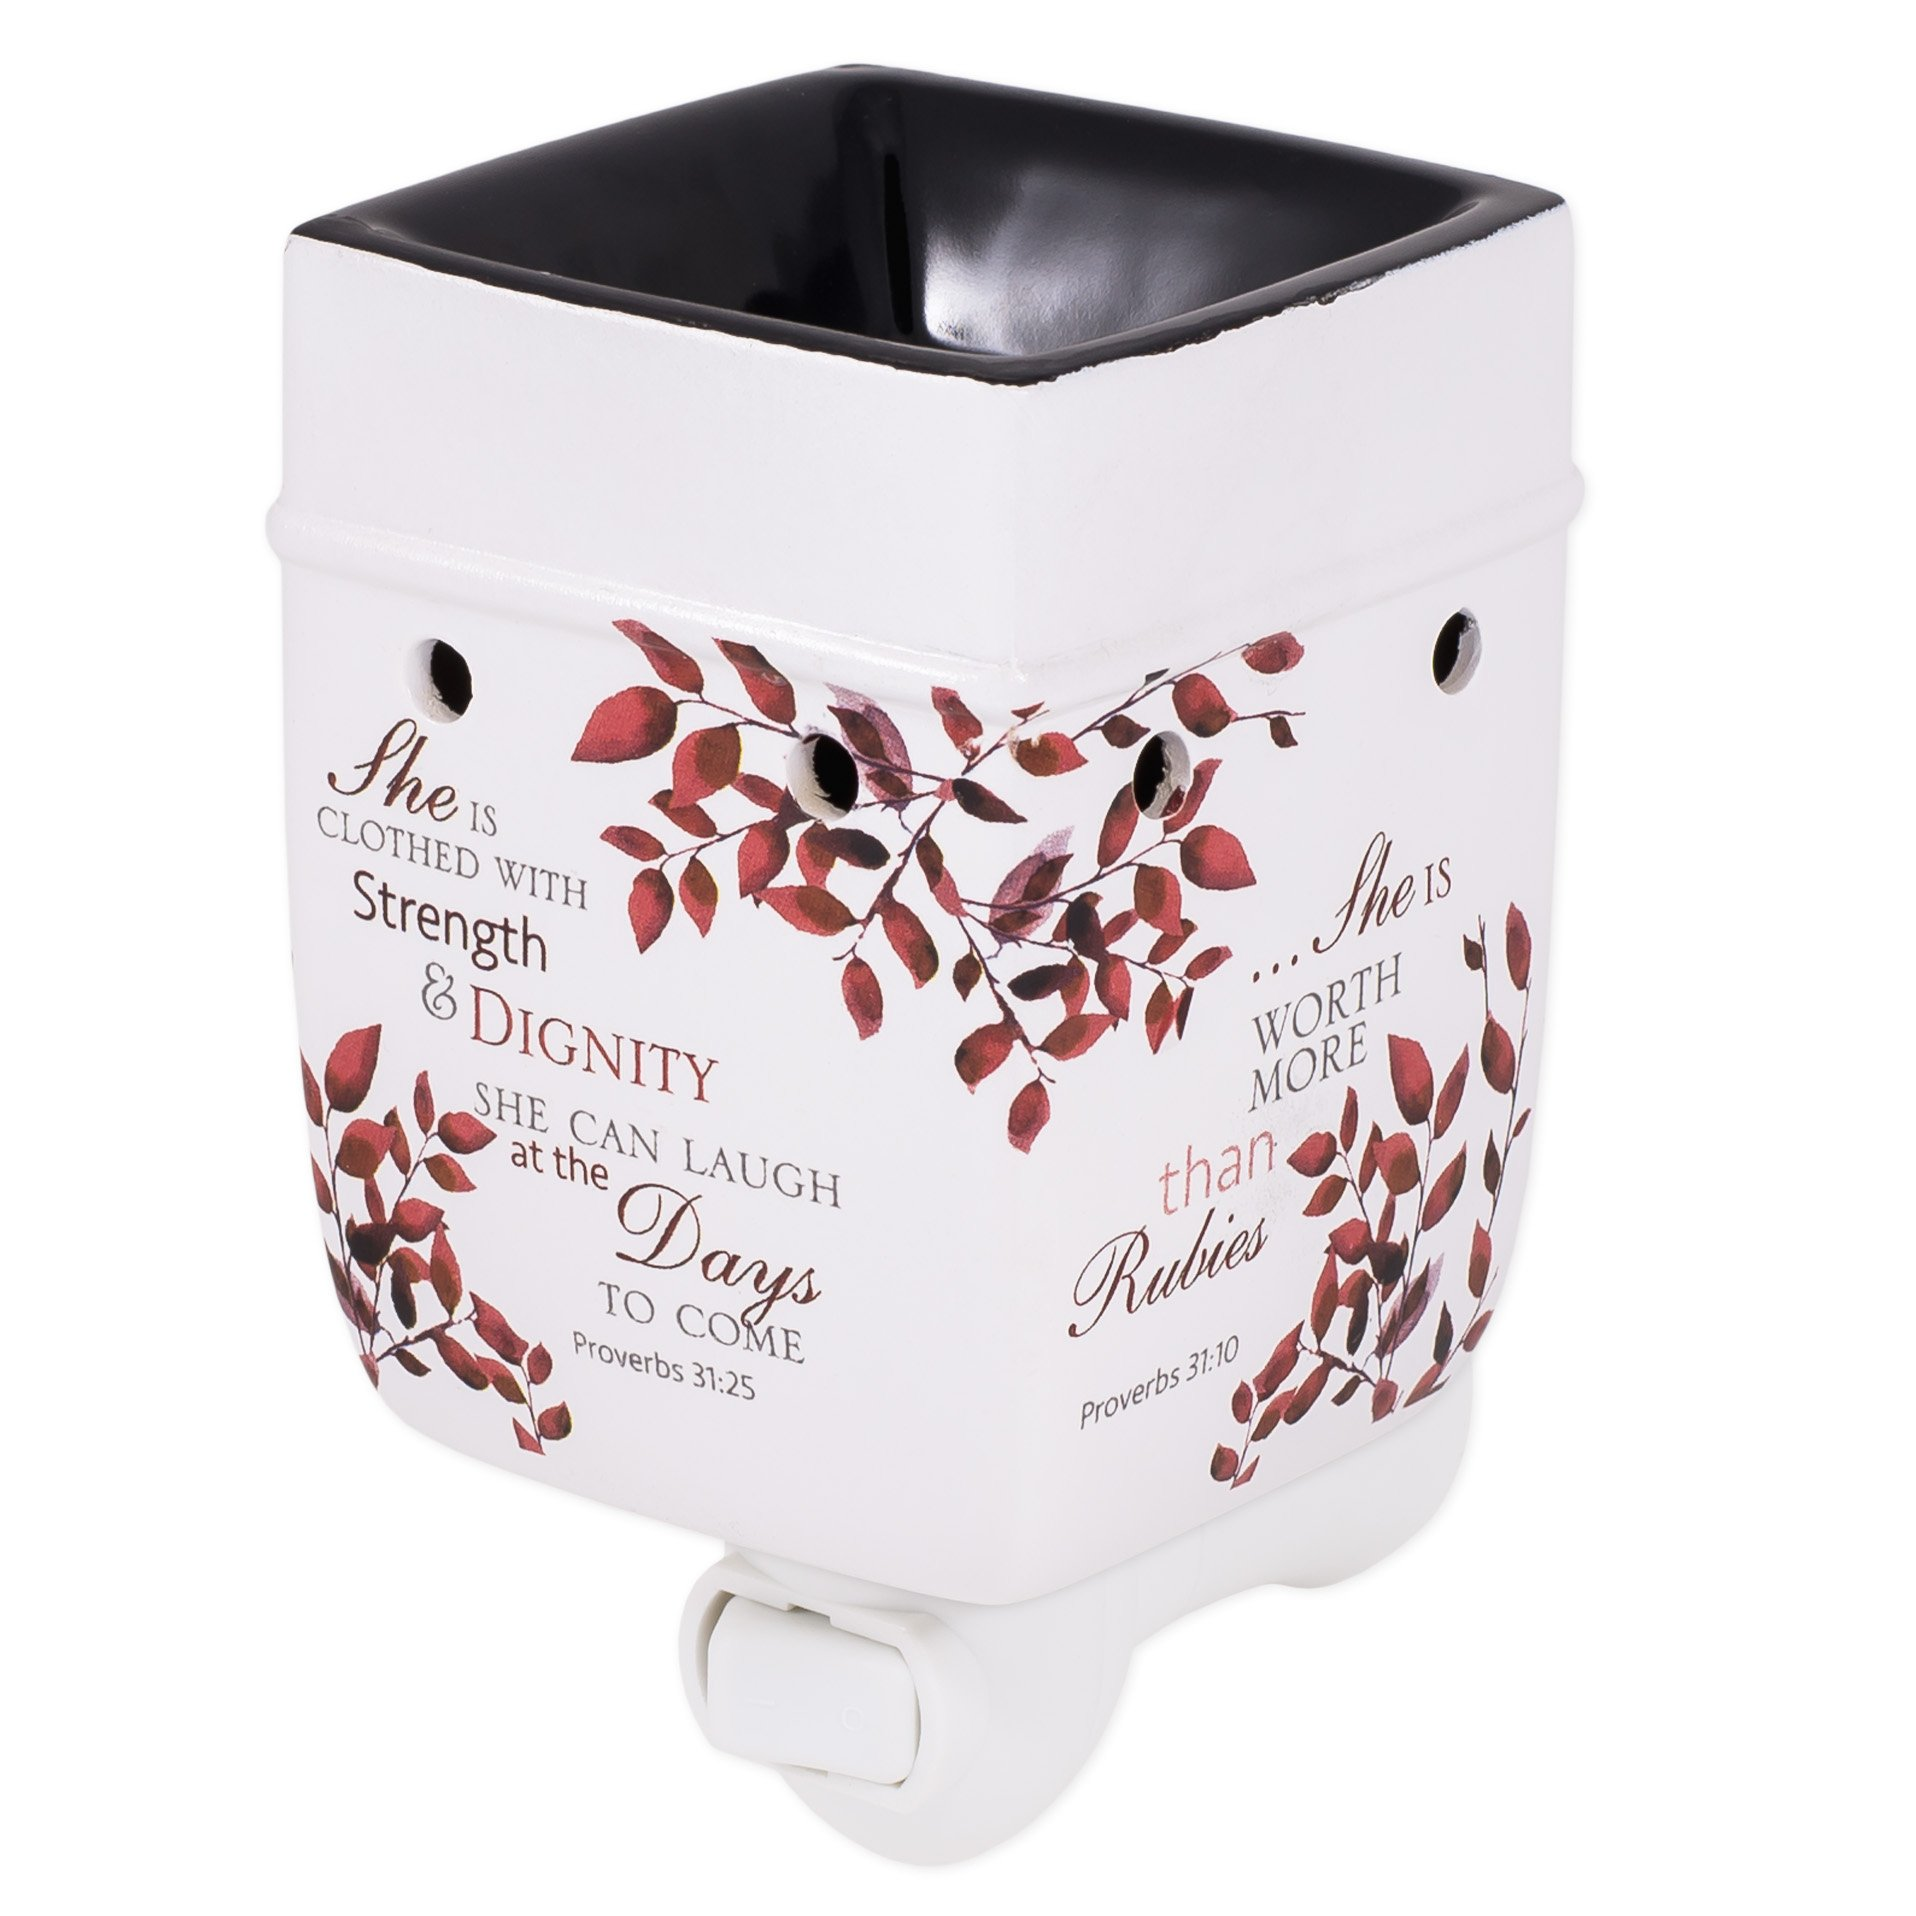 Elanze Designs She is More Precious Than Rubies Proverbs 31 Woman Electric Plug-in Outlet Wax and Oil Warmer